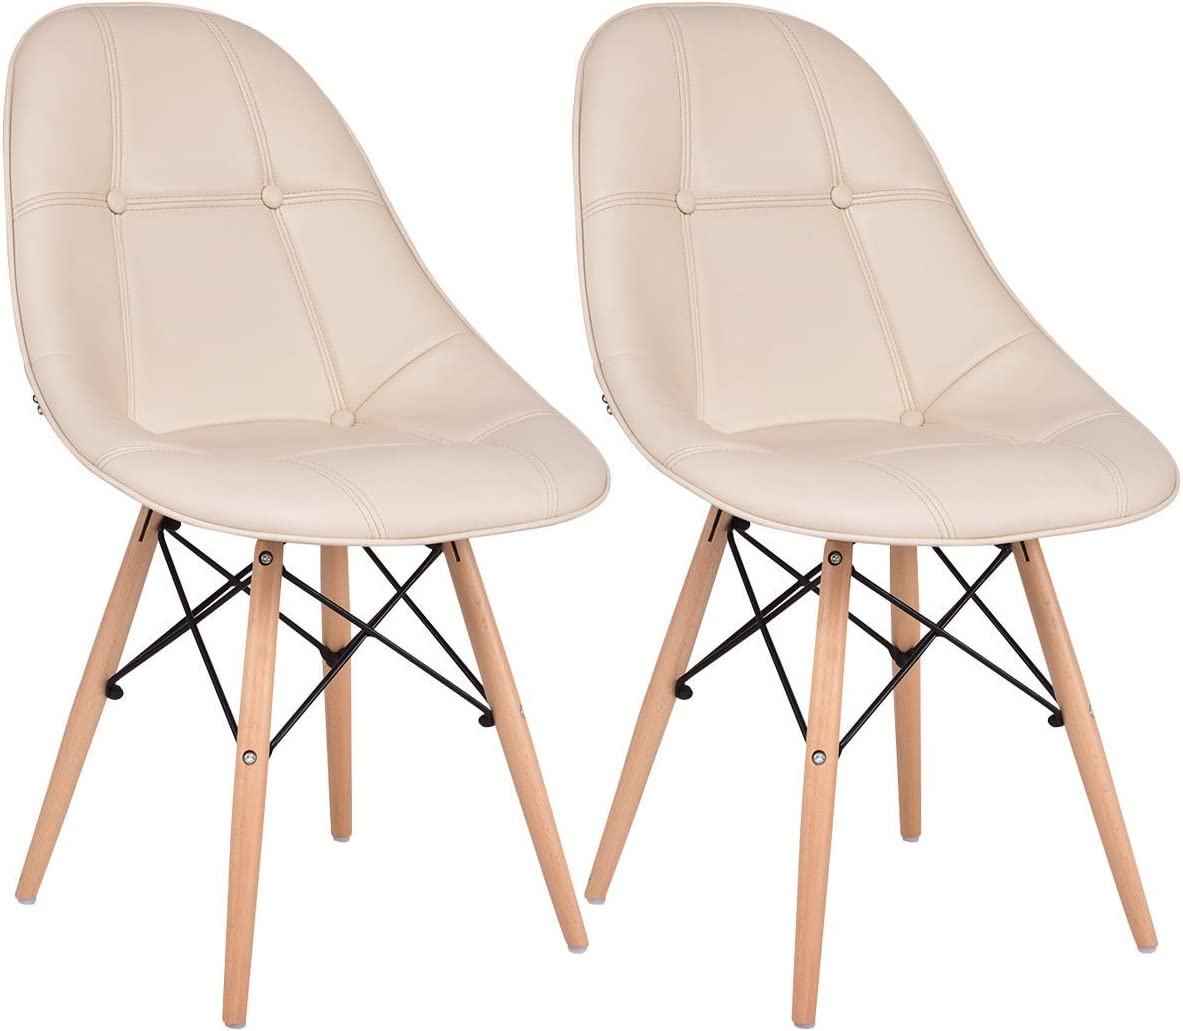 Giantex Leather Dining Chairs Set of 2 PU Upholstered Modern Style Mid-Century Tufted Nailhead Back Wood Legs Armless DSW Side Chair for Living Room Dining Room Kitchen Beige